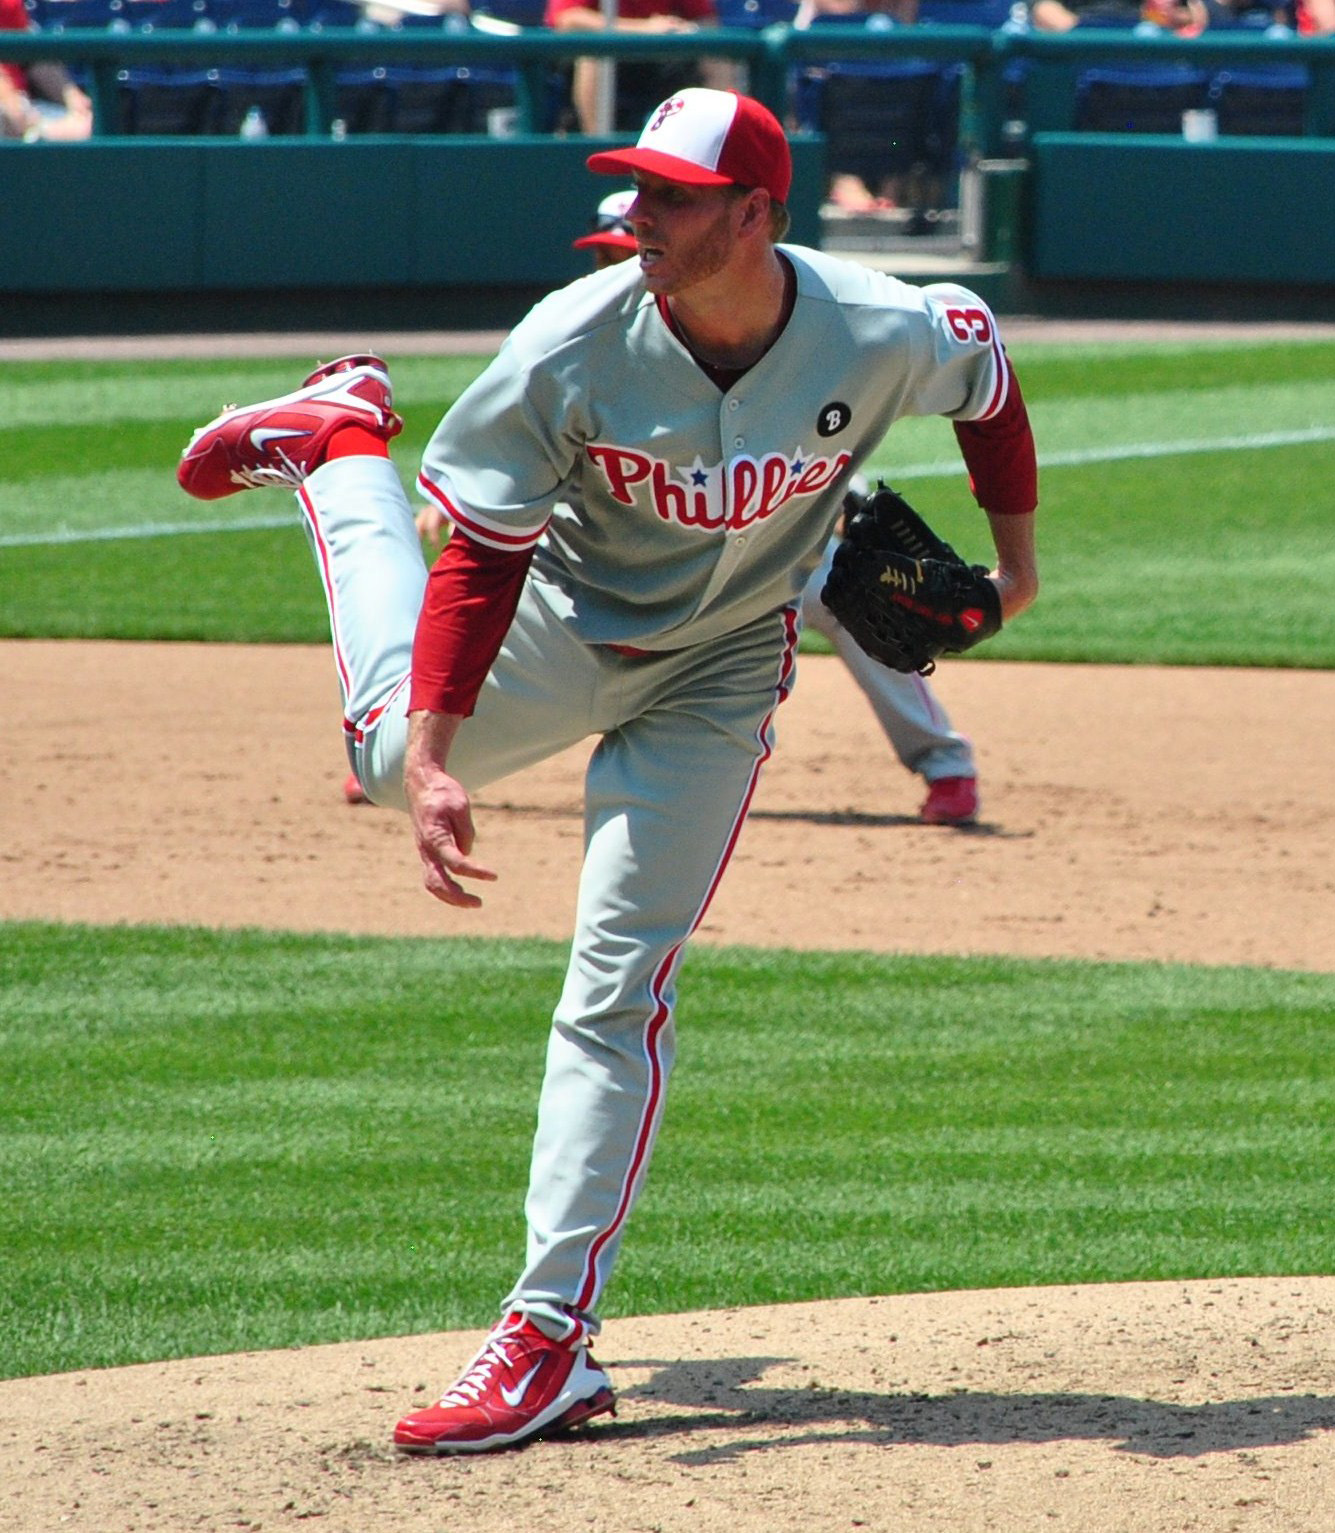 Courtesy of Wikimedia Commons Roy Halladay fires from the mound. A resurgent year from Halladay could do wonders for an aging Phillies team.